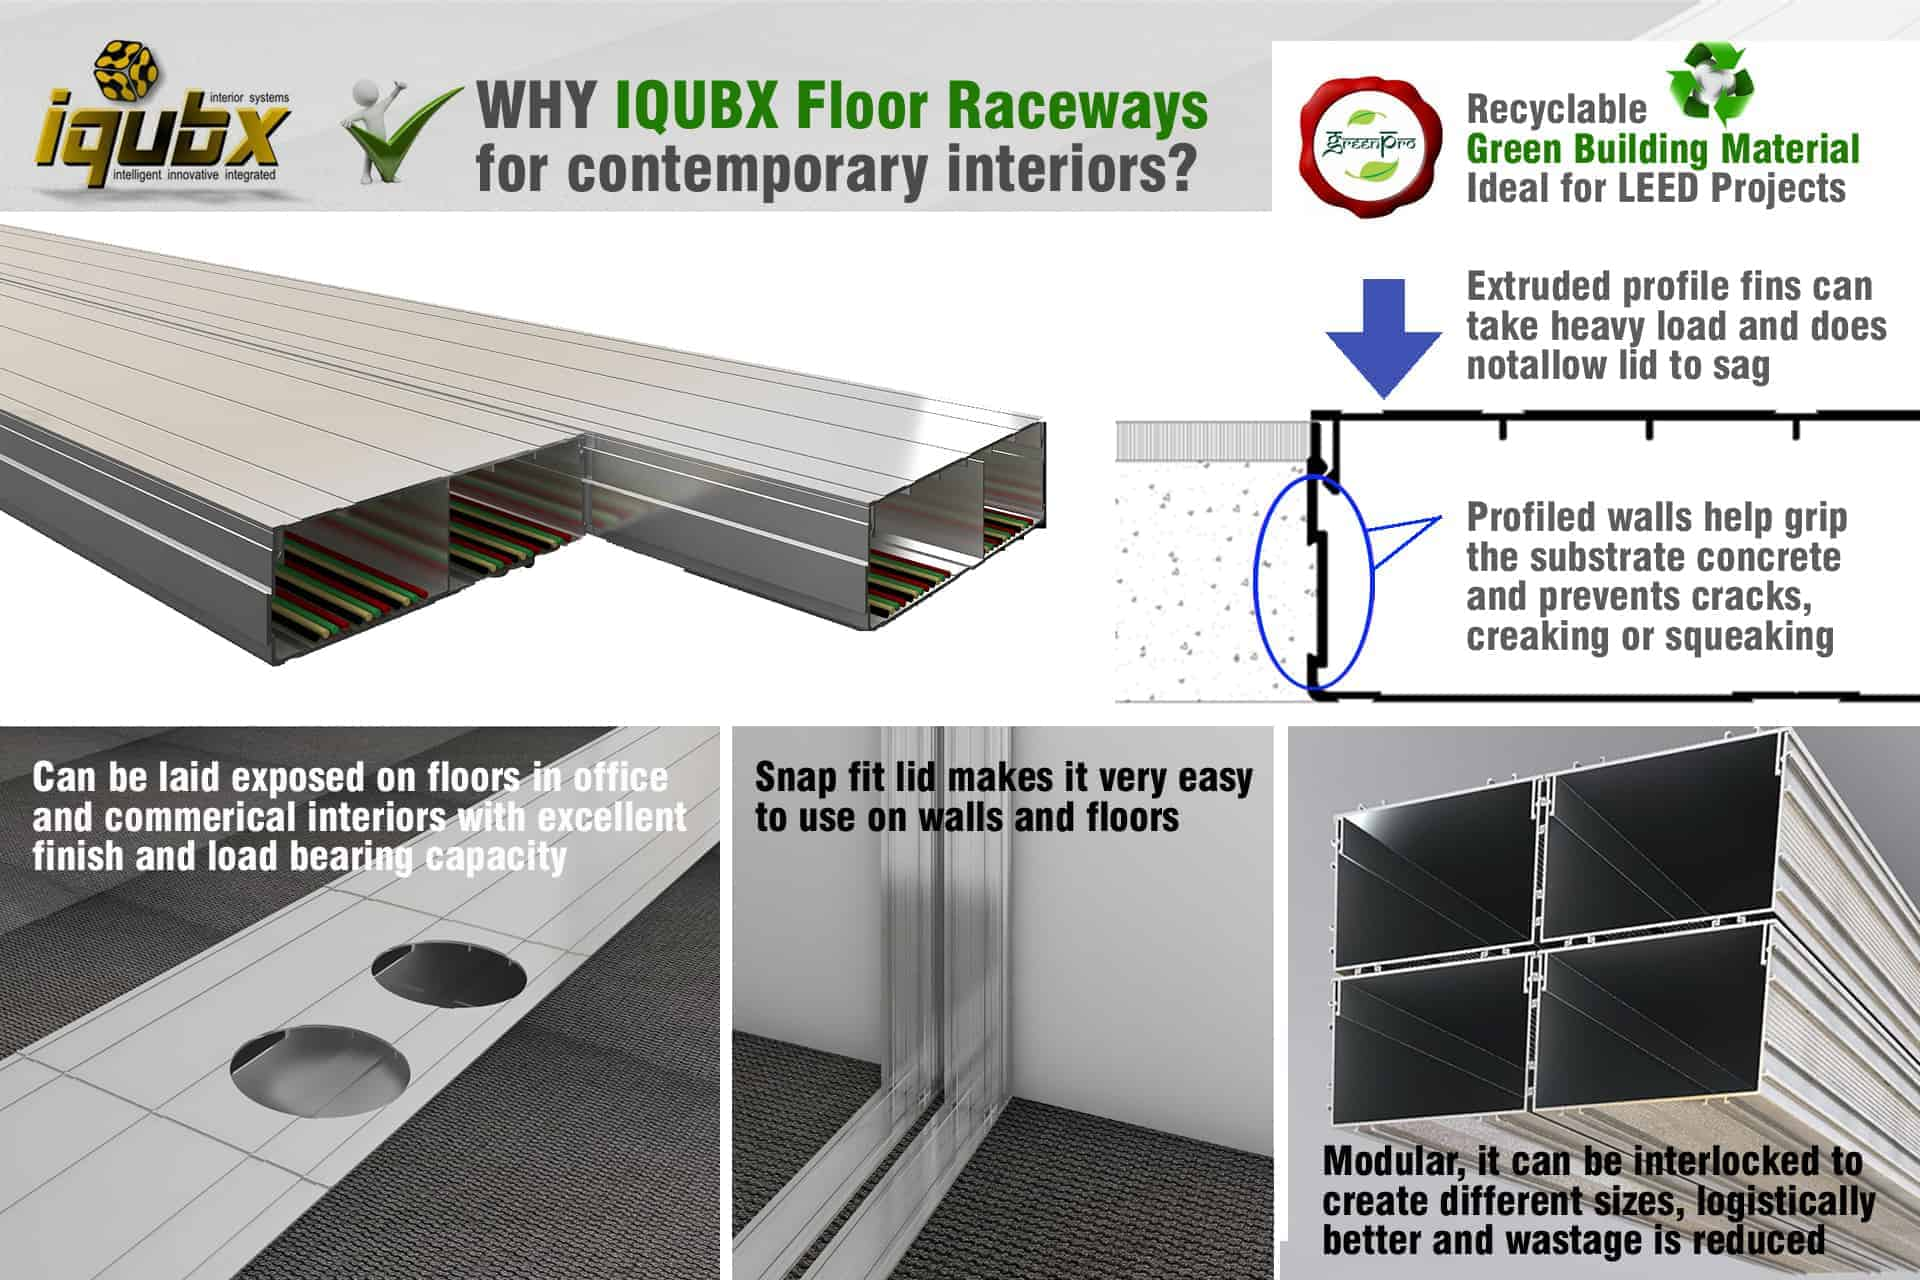 advantages of IQUBX floor raceway